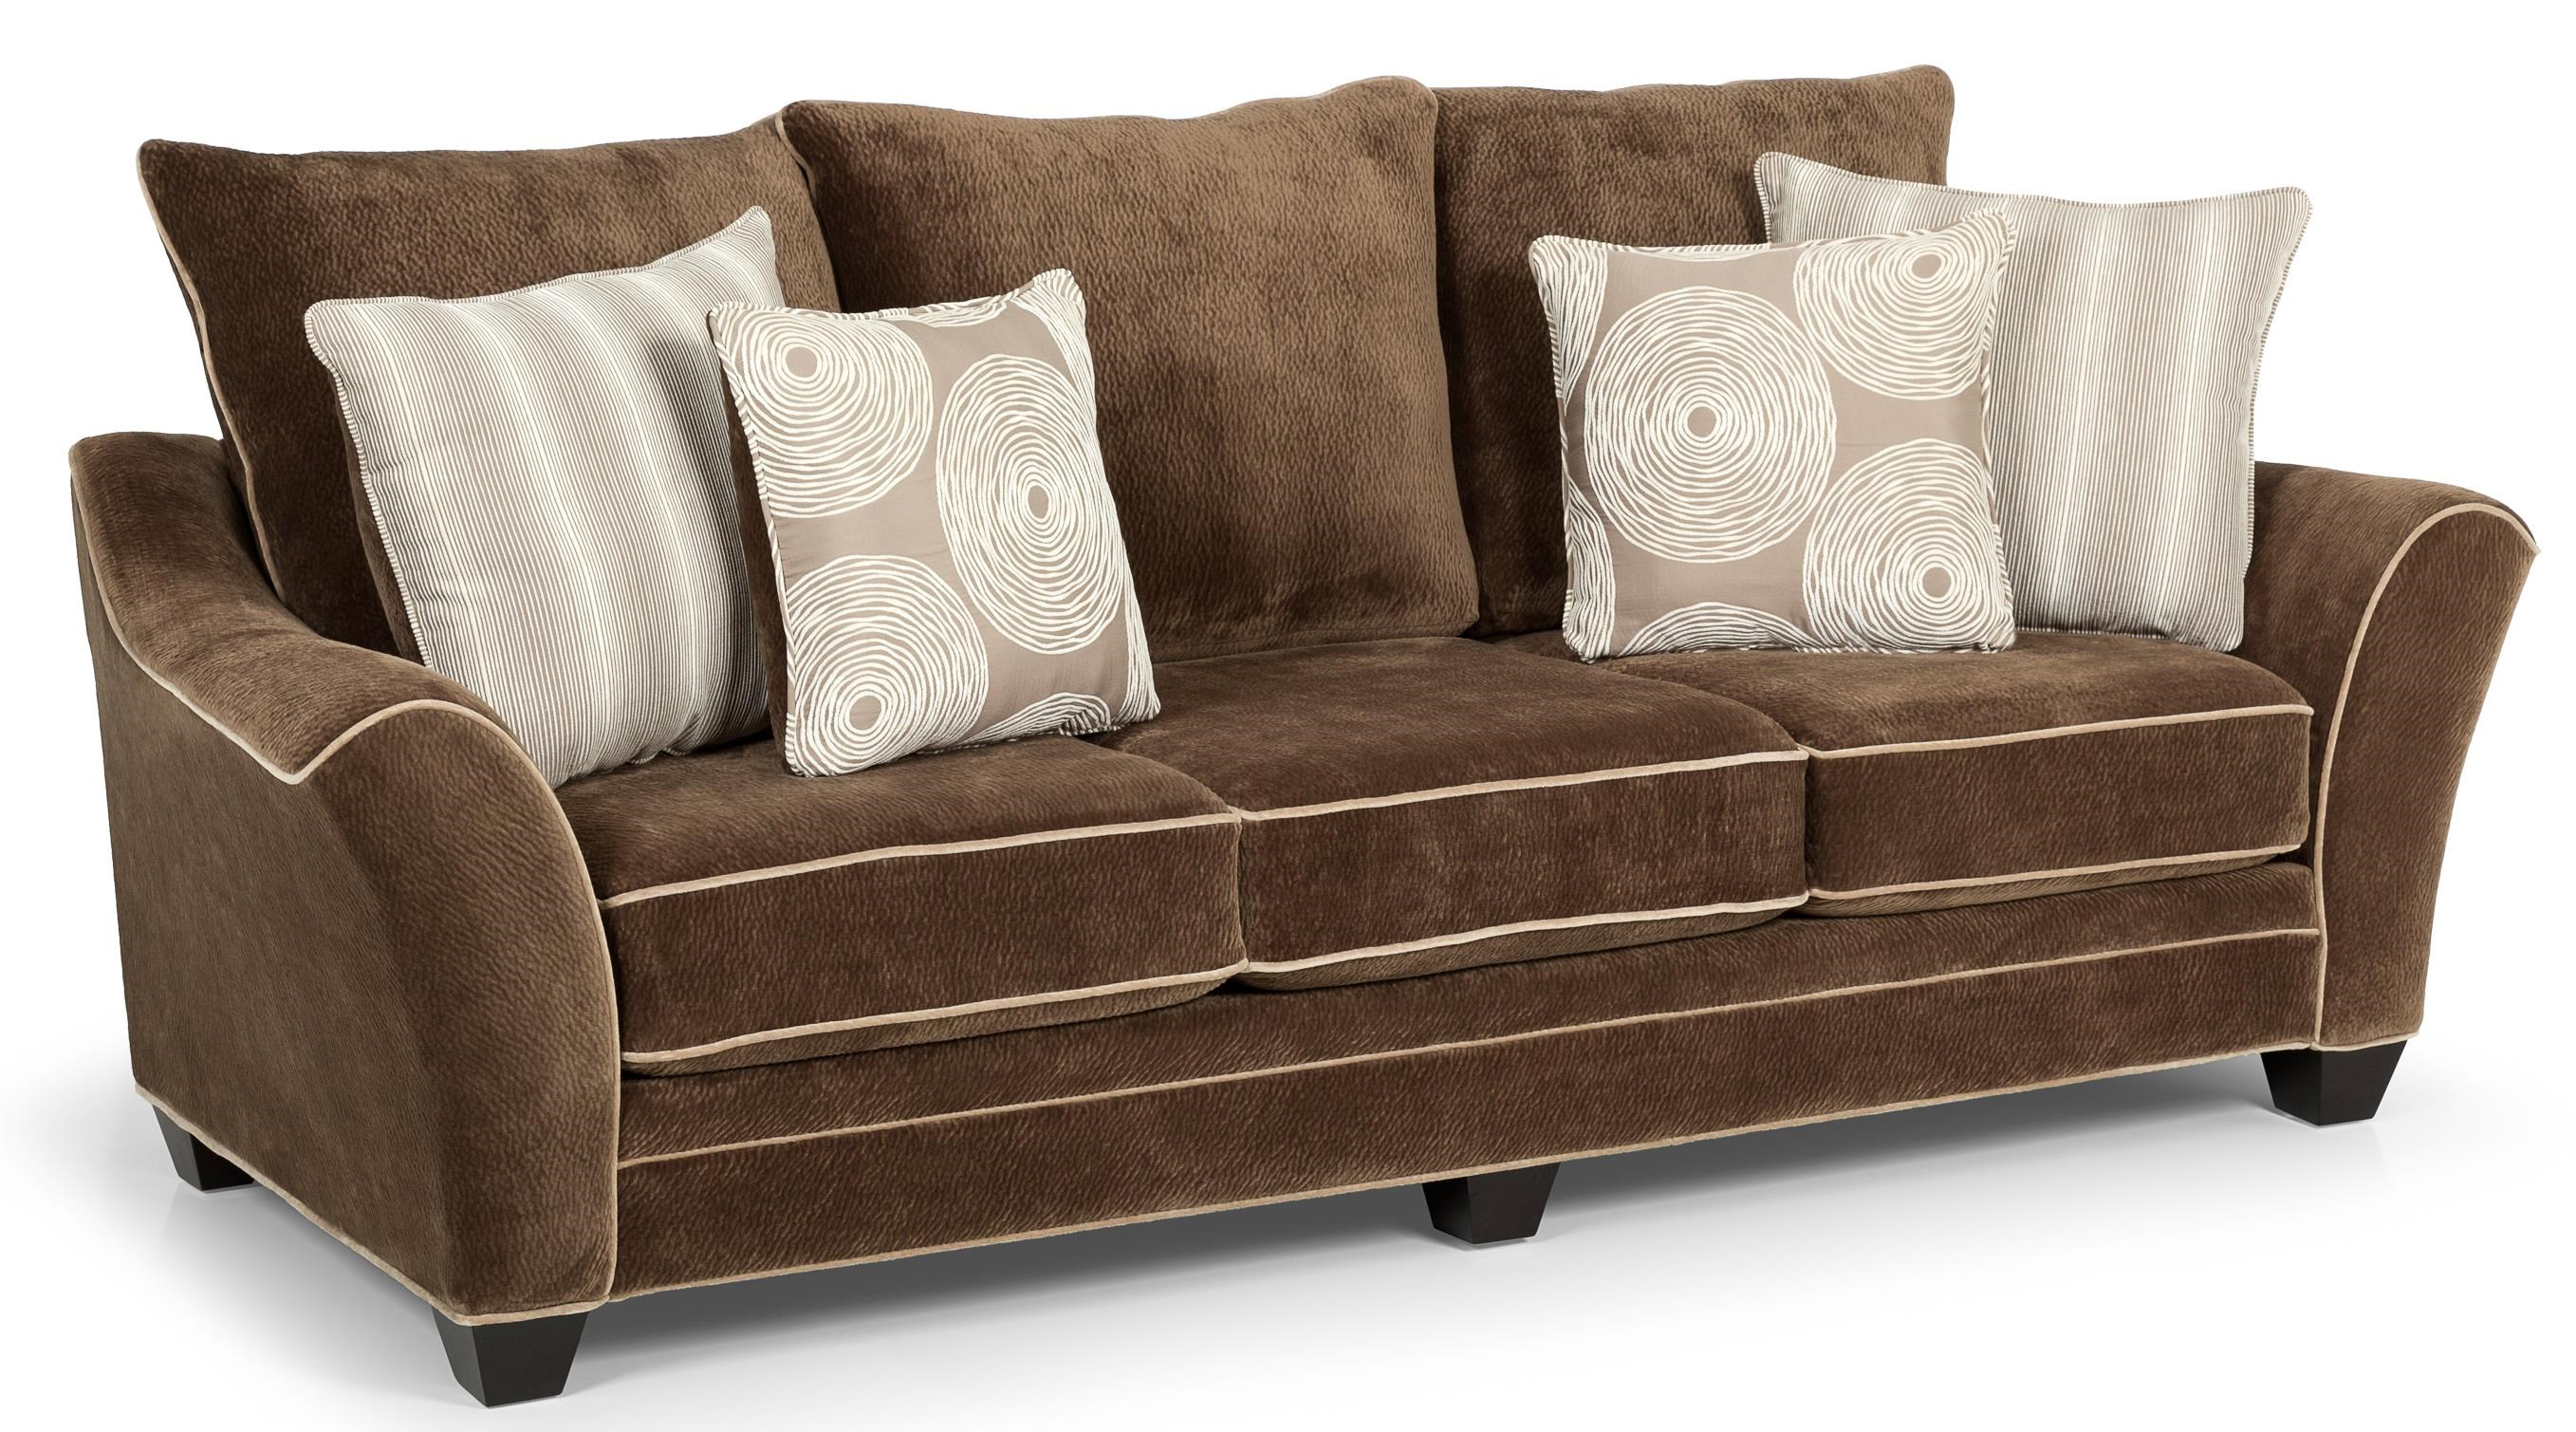 Sunset Home 156 Contemporary Scattered Back Sofa